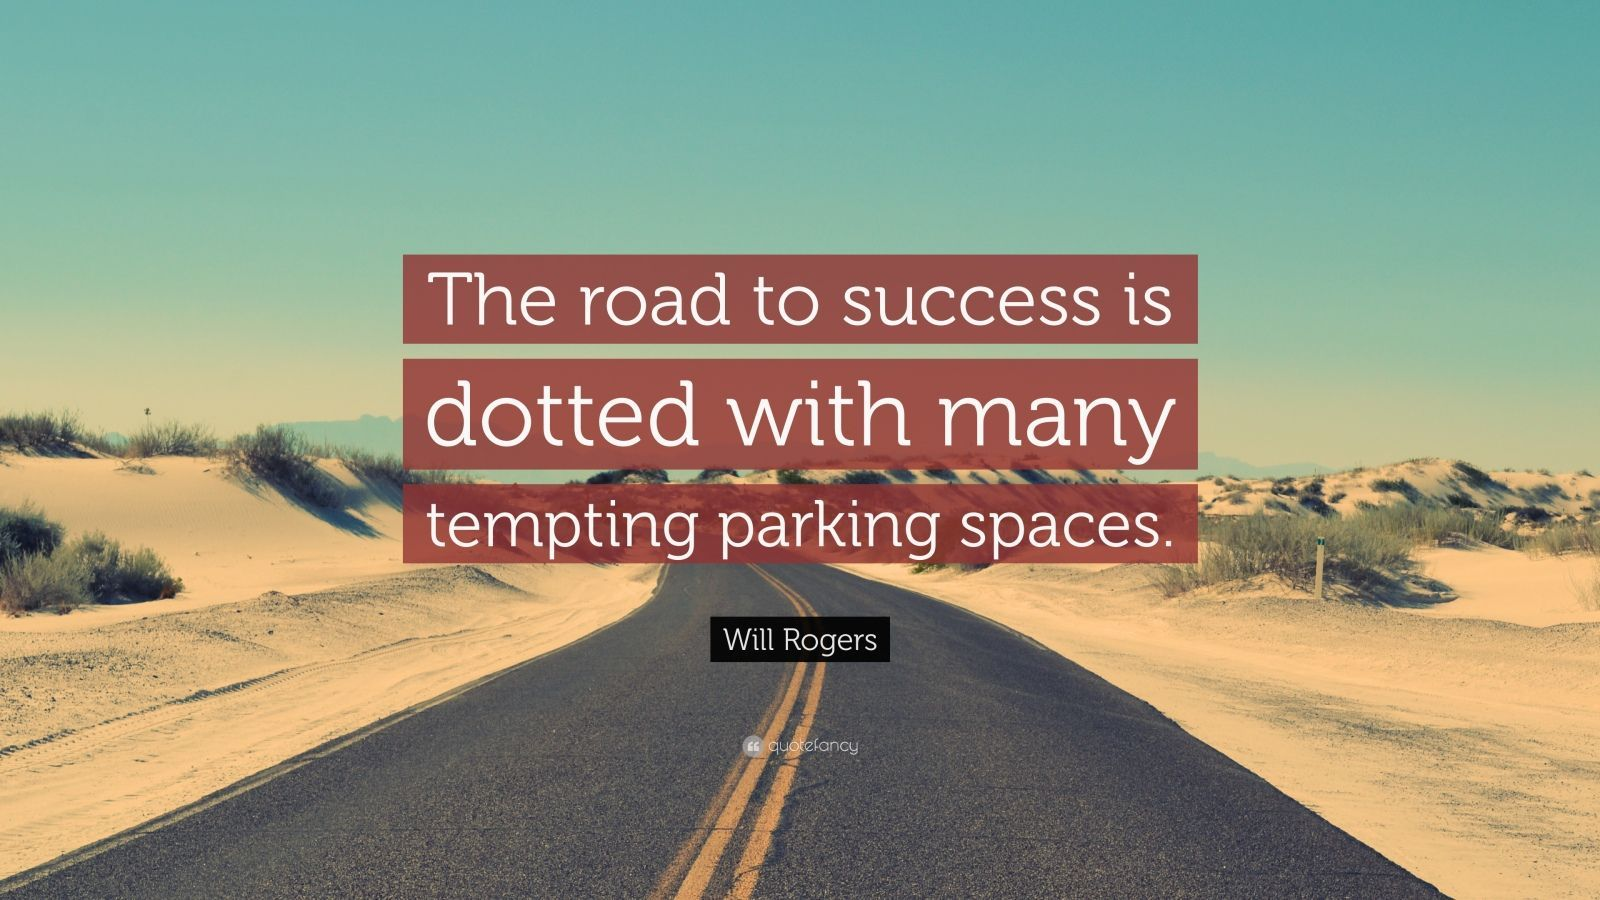 Funny Quotes The Road To Success Is Dotted With Many Tempting Parking Spaces Will Rogers Bicycle Quotes Jim Rohn Quotes Albert Einstein Life